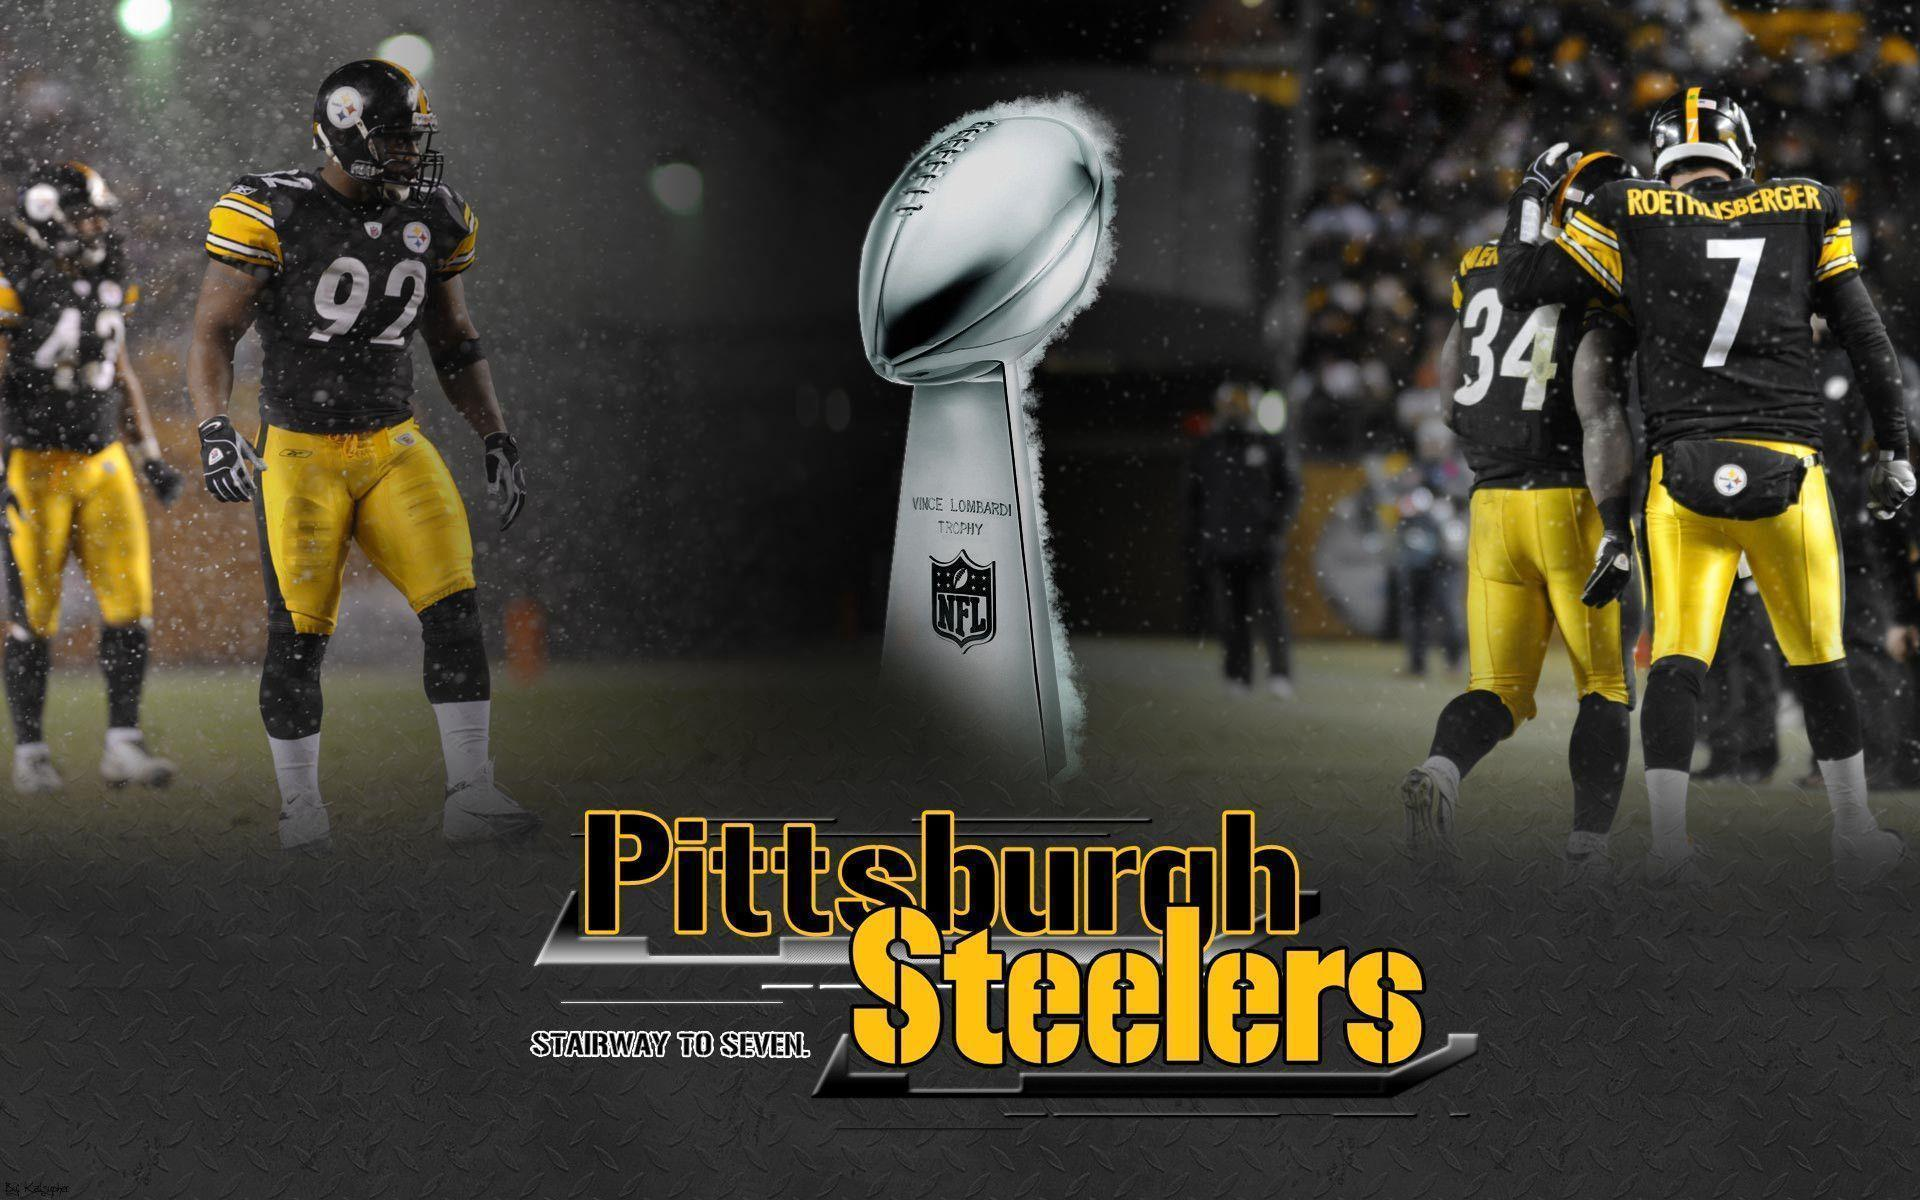 Wallpaper of the day: Pittsburgh Steelers wallpaper | Pittsburgh ...